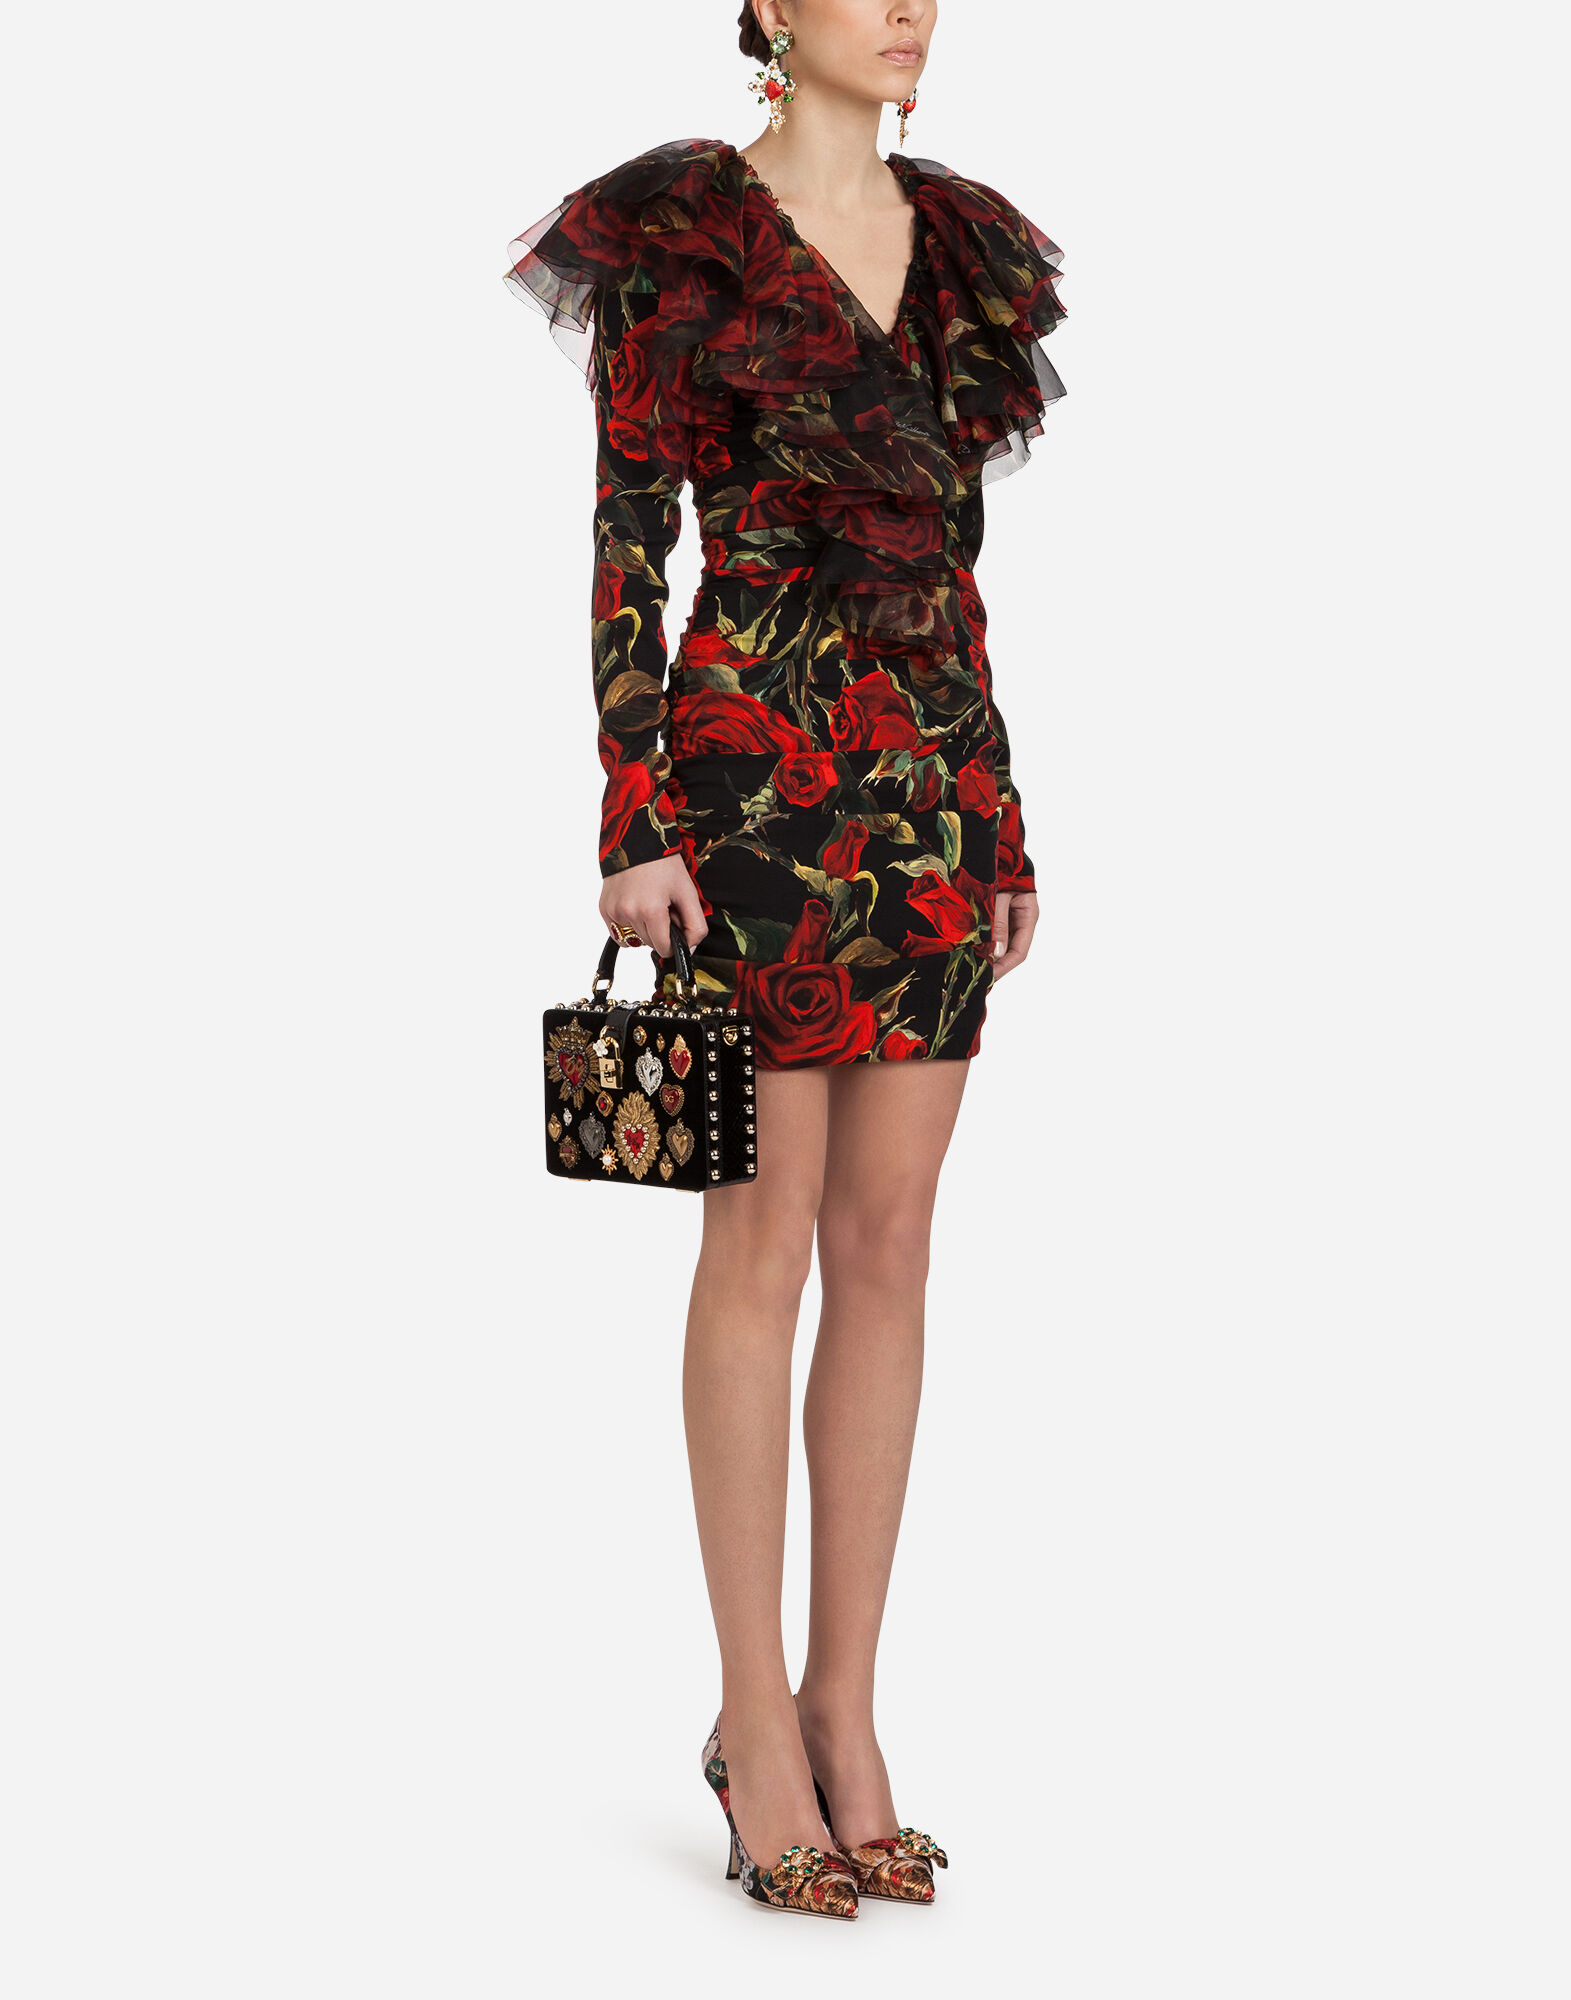 DOLCE & GABBANA Ruffled Floral-Print Silk-Charmeuse And Organza Mini Dress, Floral Print